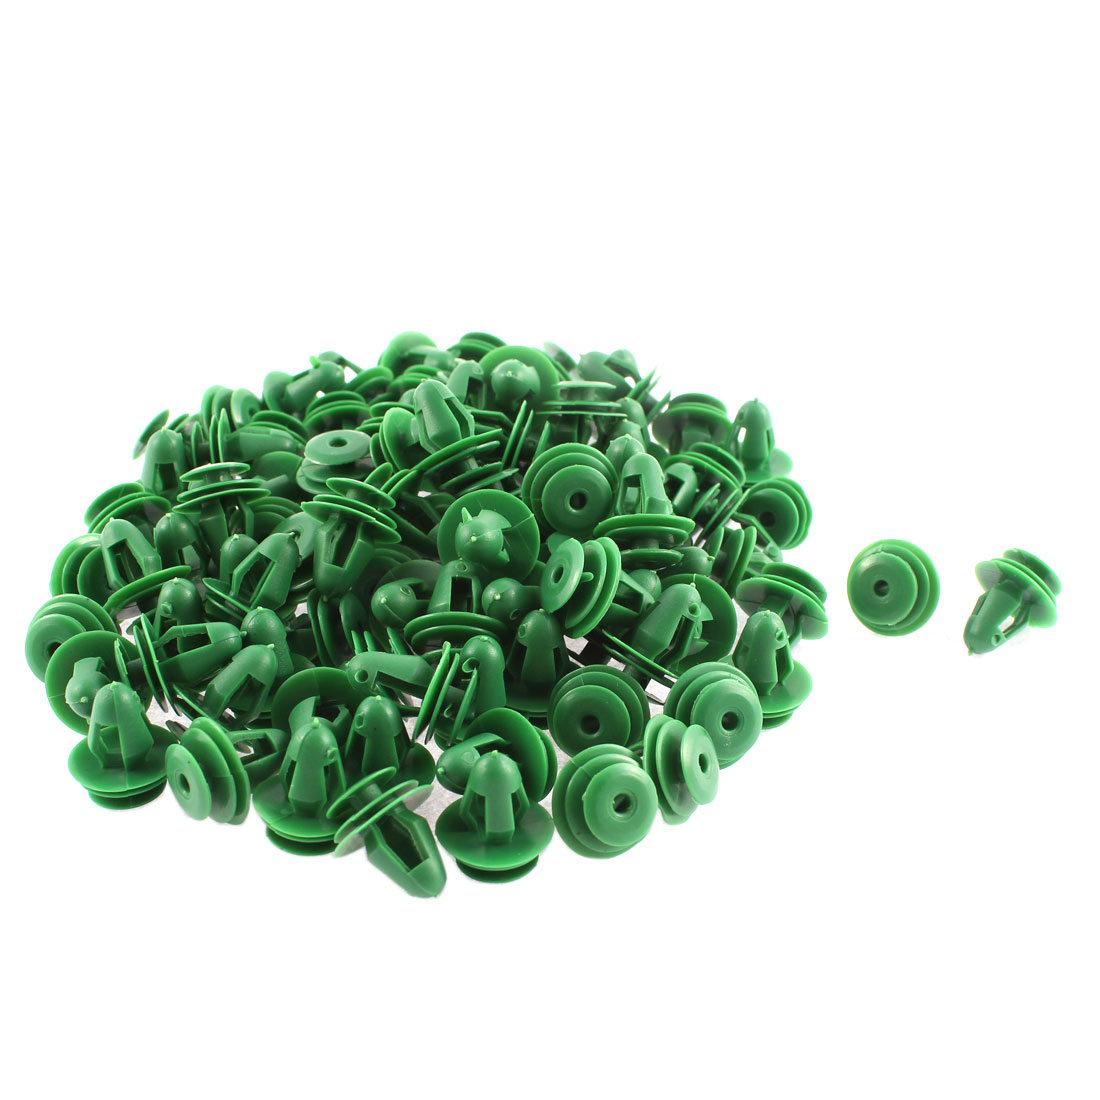 Unique Bargains 100 Pcs Green Plastic Door Trim Interior Weatherstrip Mat Rivet